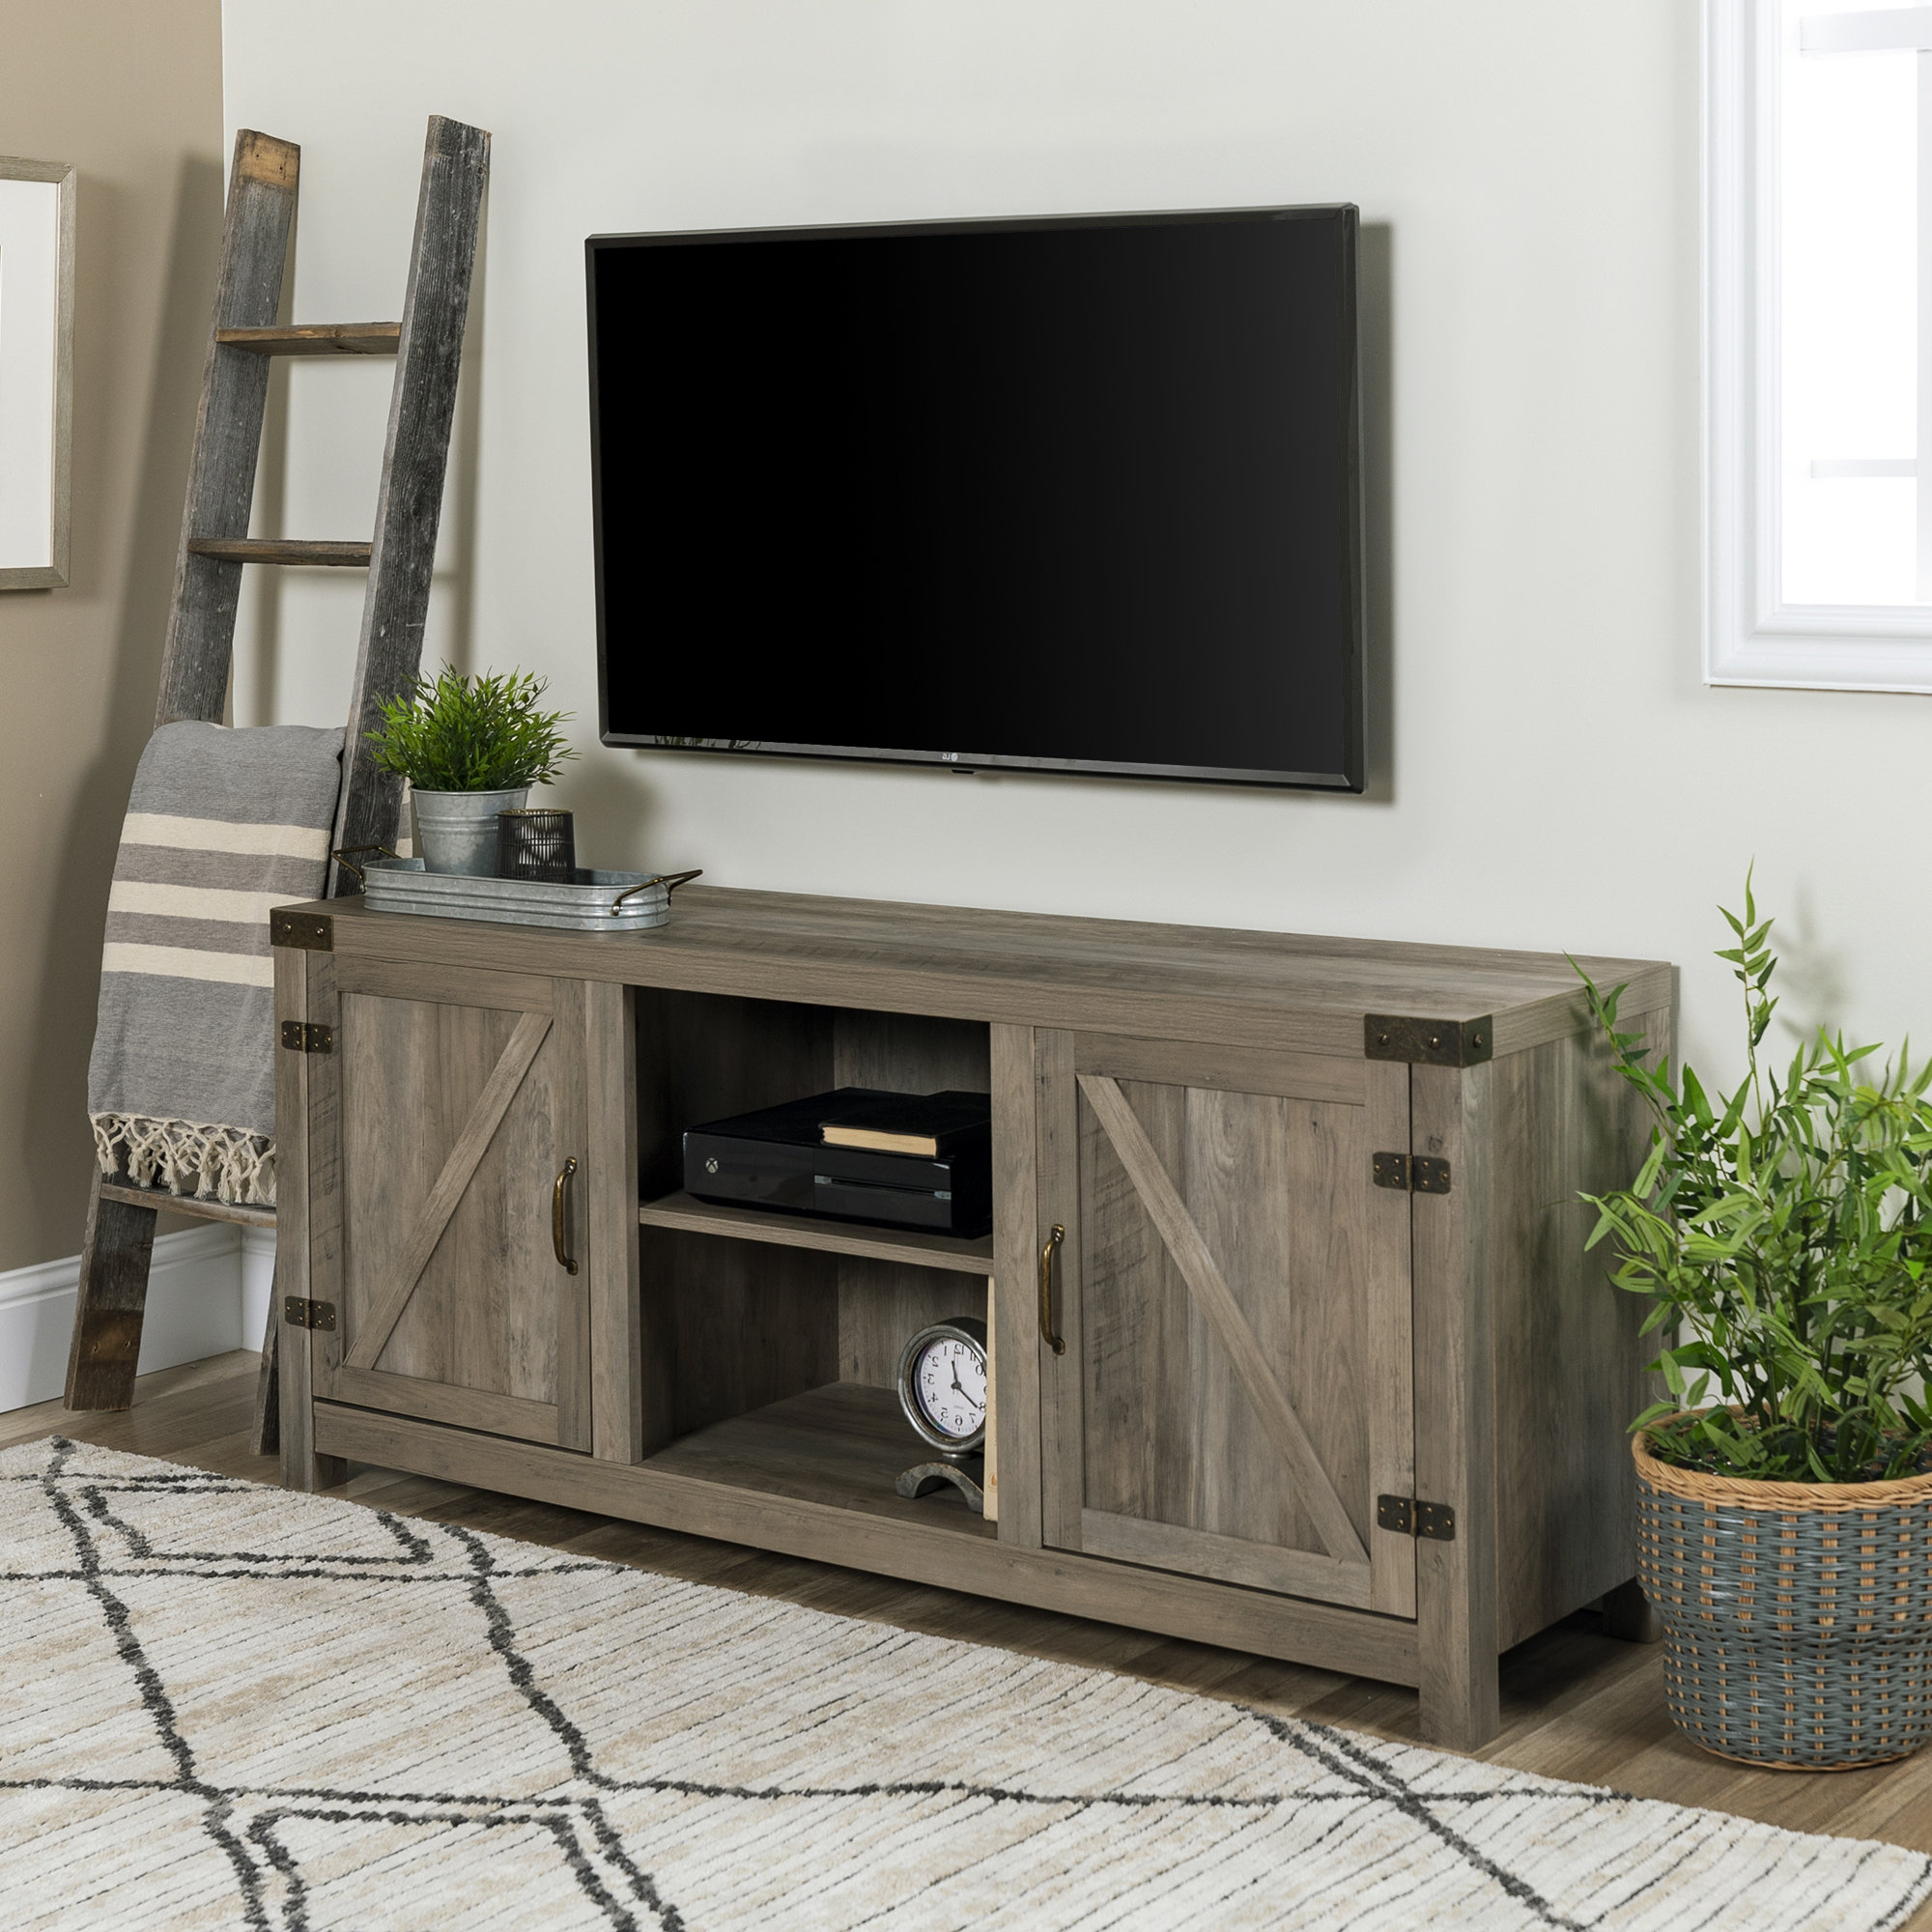 Cream Colored Tv Stands | Wayfair In Century Blue 60 Inch Tv Stands (Gallery 8 of 20)